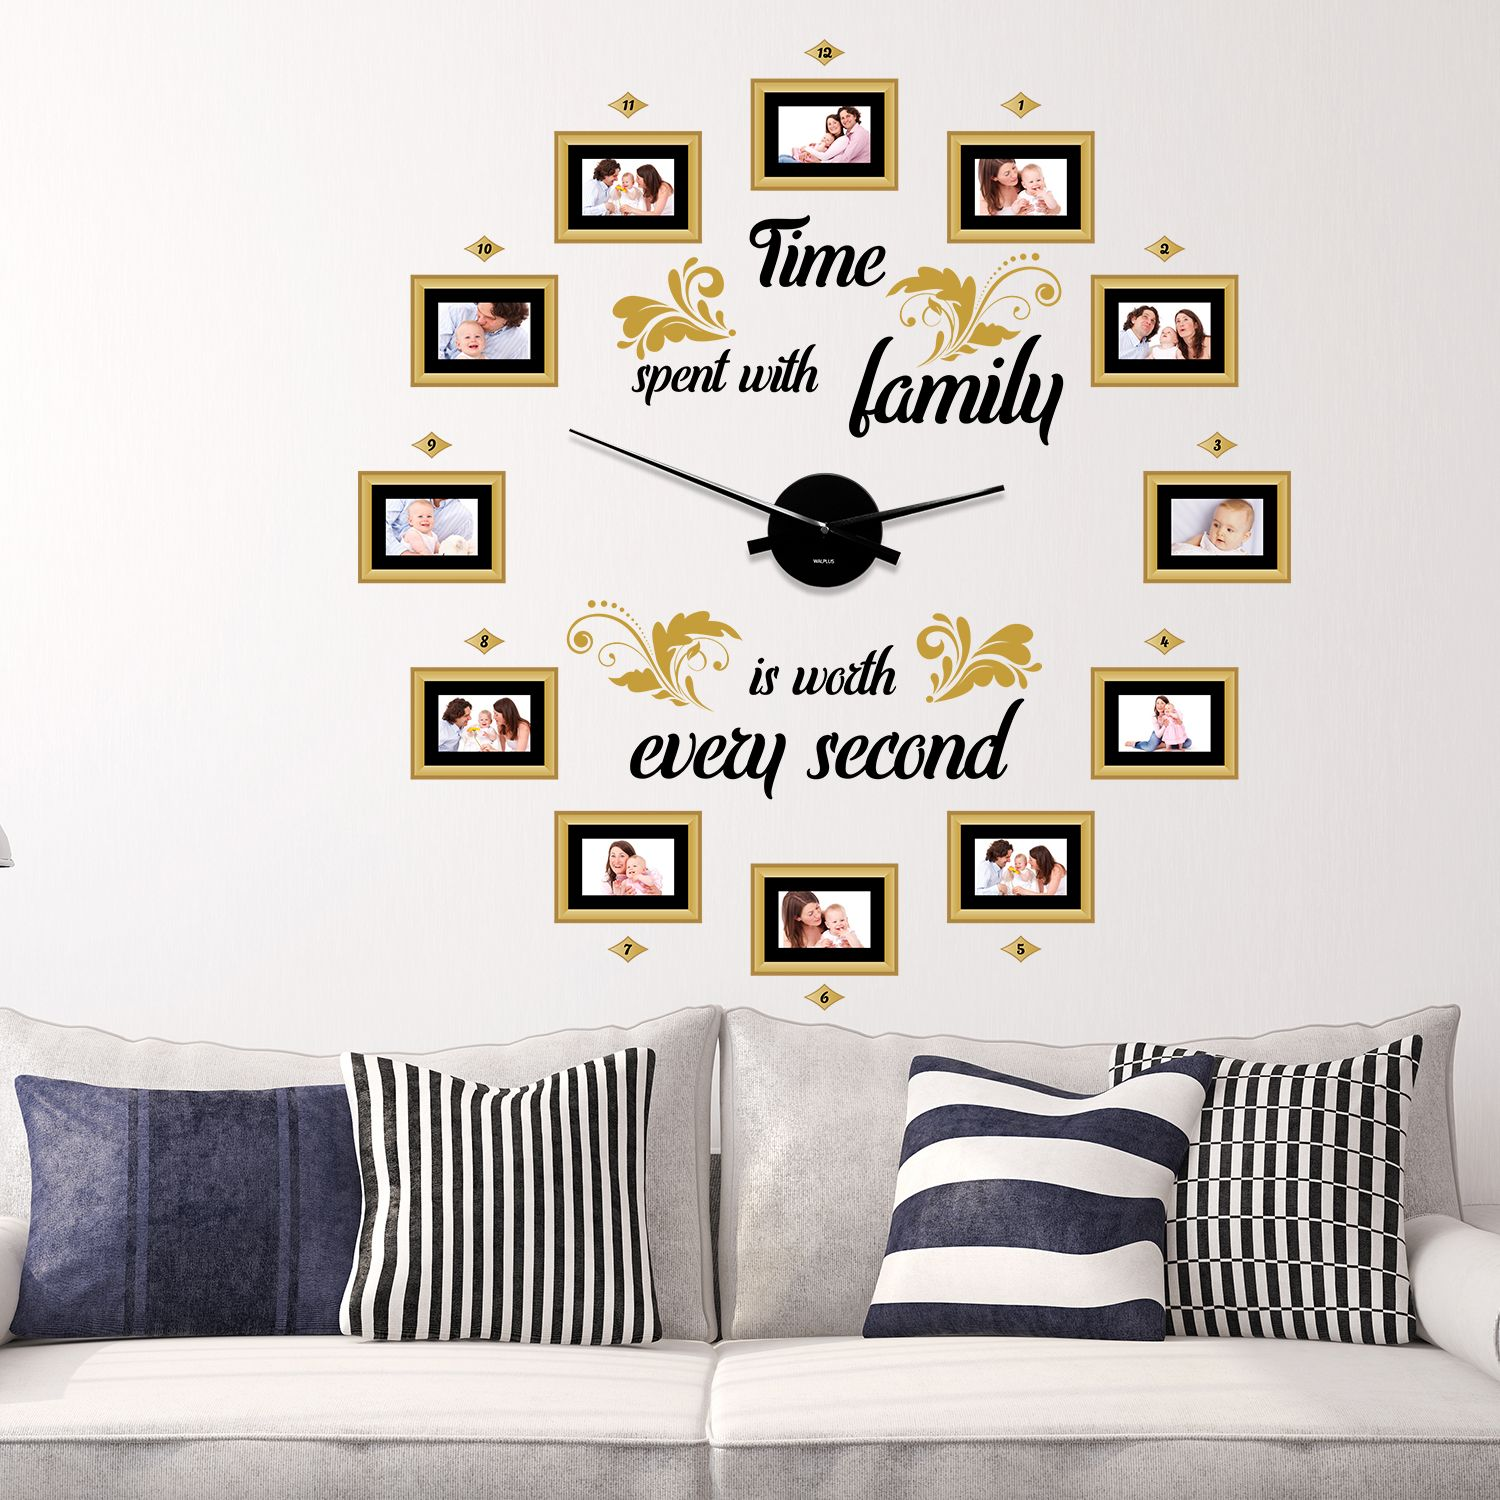 WC2099 - COM - WS9066 + WC2050 - Family Time Classic Photo Frames Wall Clock